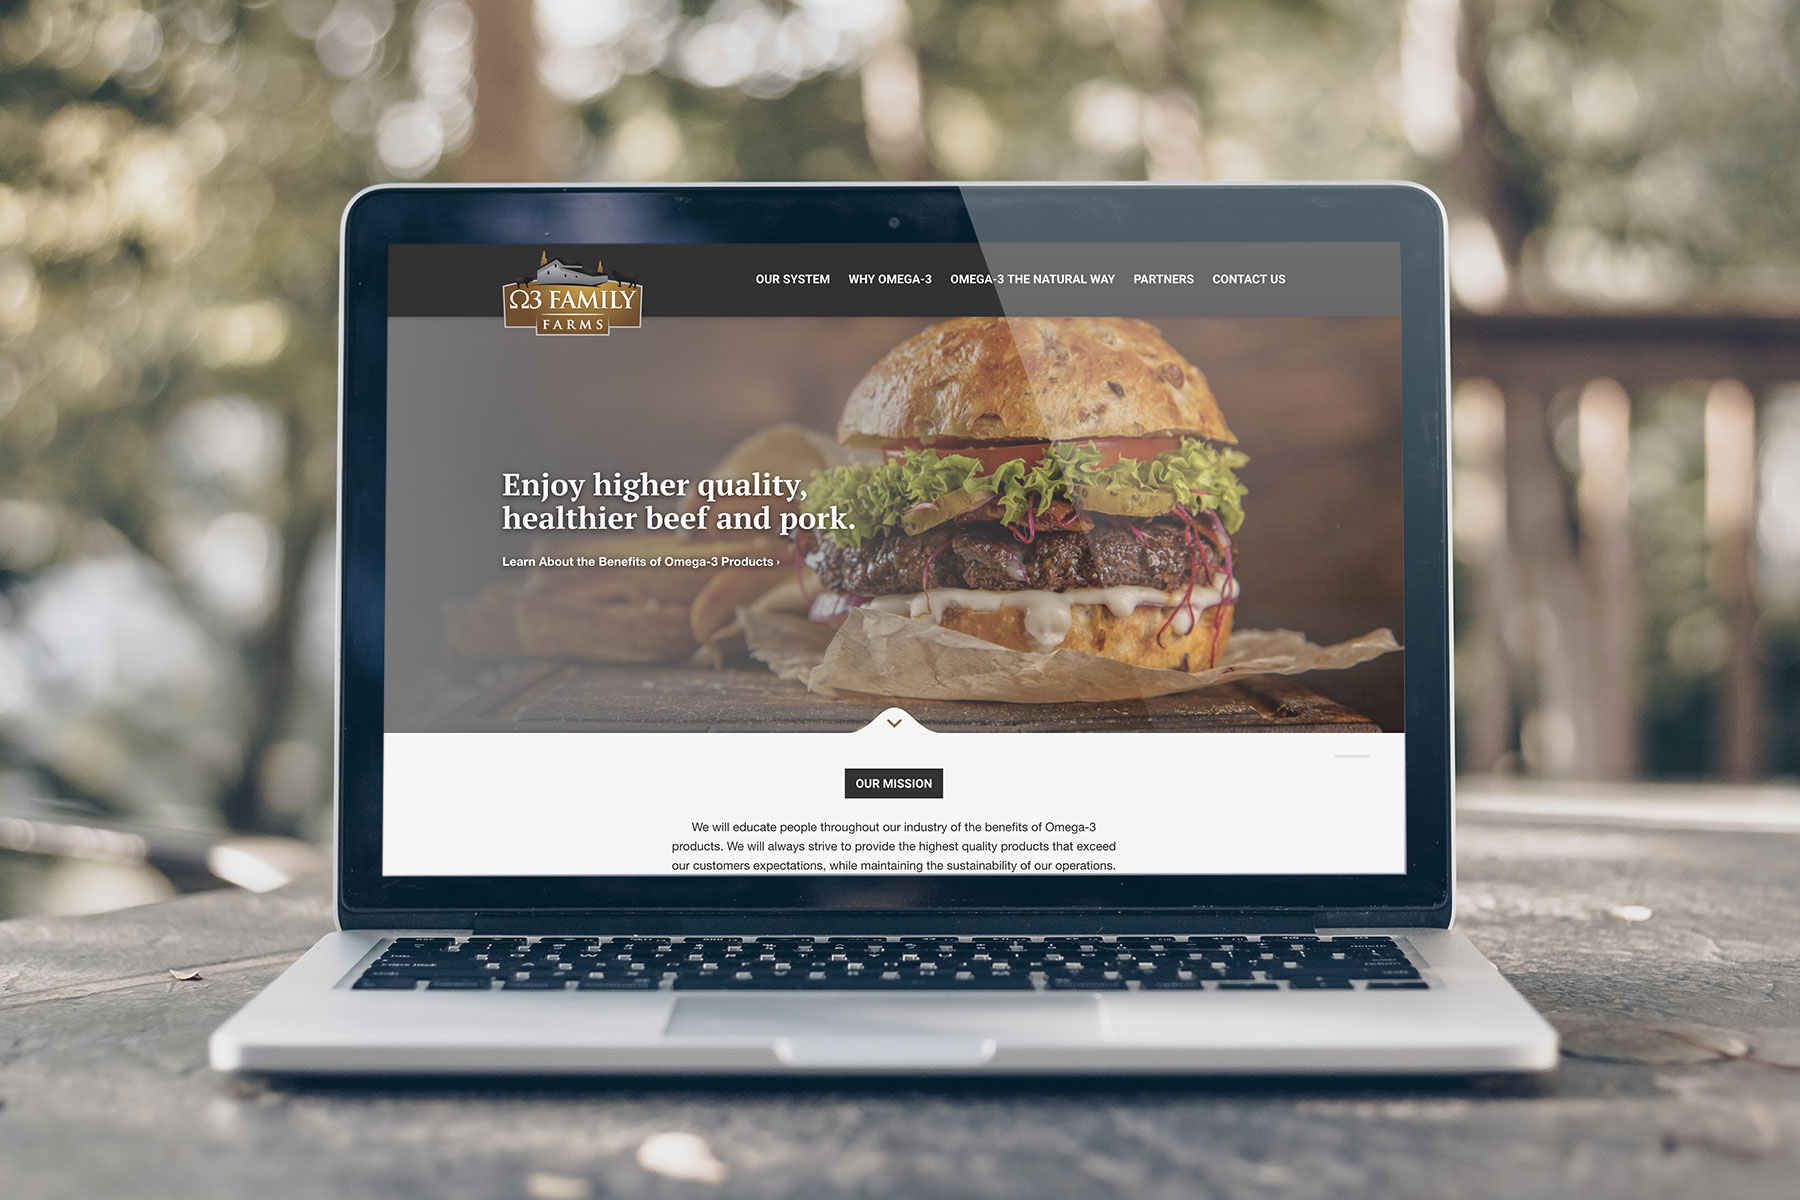 Omega 3 Family Farms - Home page design for website shown on Macbook